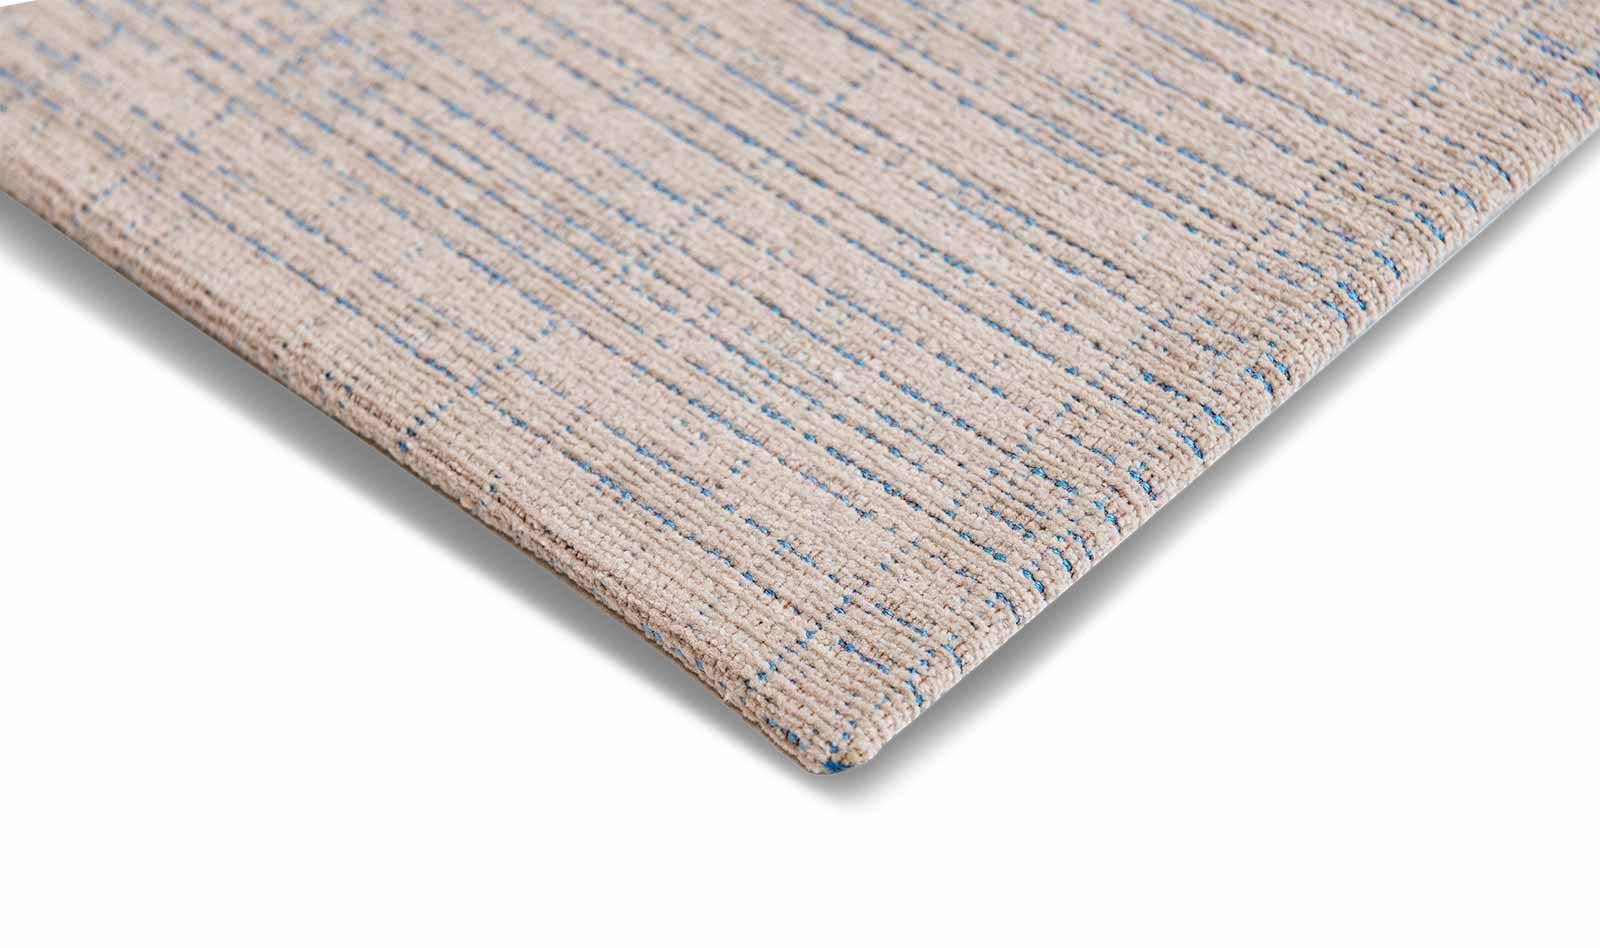 Louis De Poortere Jackies Wilton Rugs So Chic 8491 corner 2